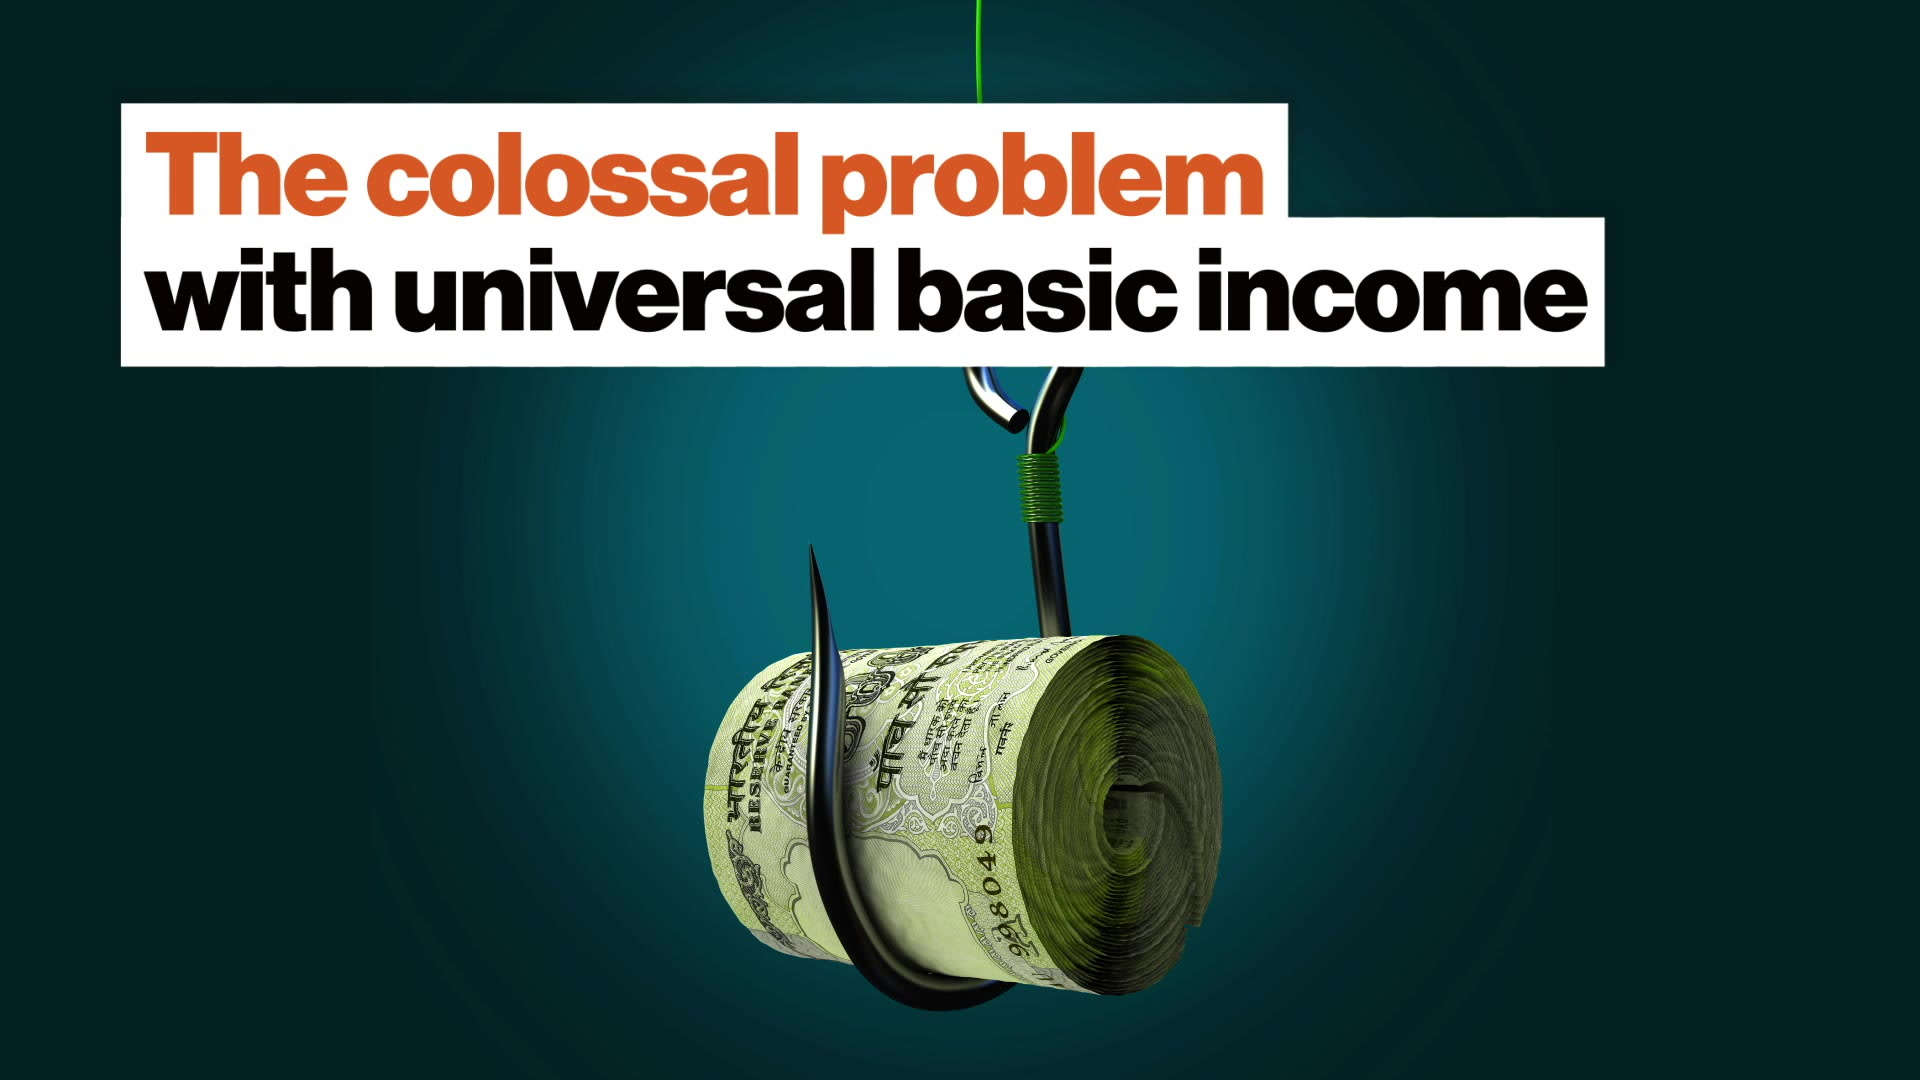 The colossal problem with universal basic income